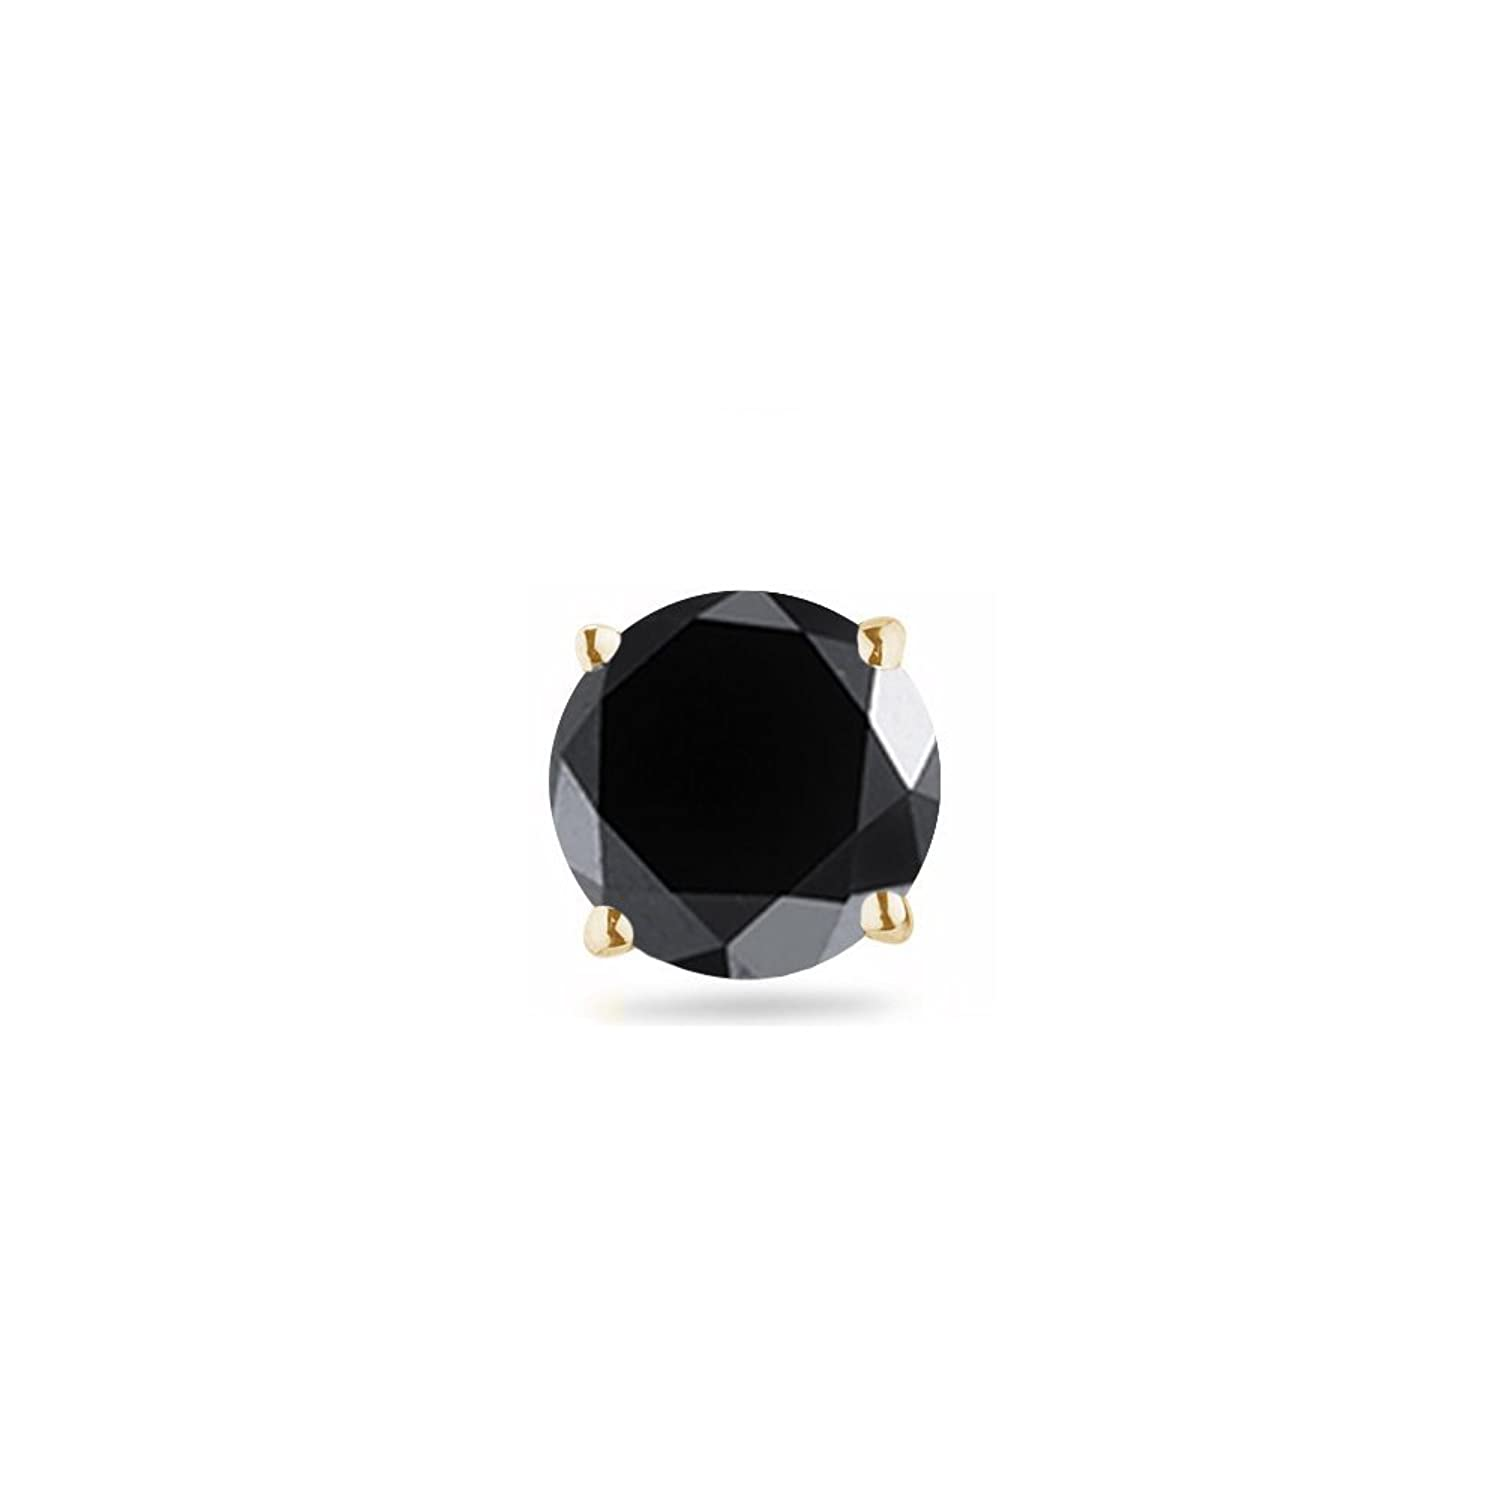 0.09-0.12 Cts of 2.50-3.00 mm AA Round Black Diamond Mens Stud Earring in 14K Yellow Gold